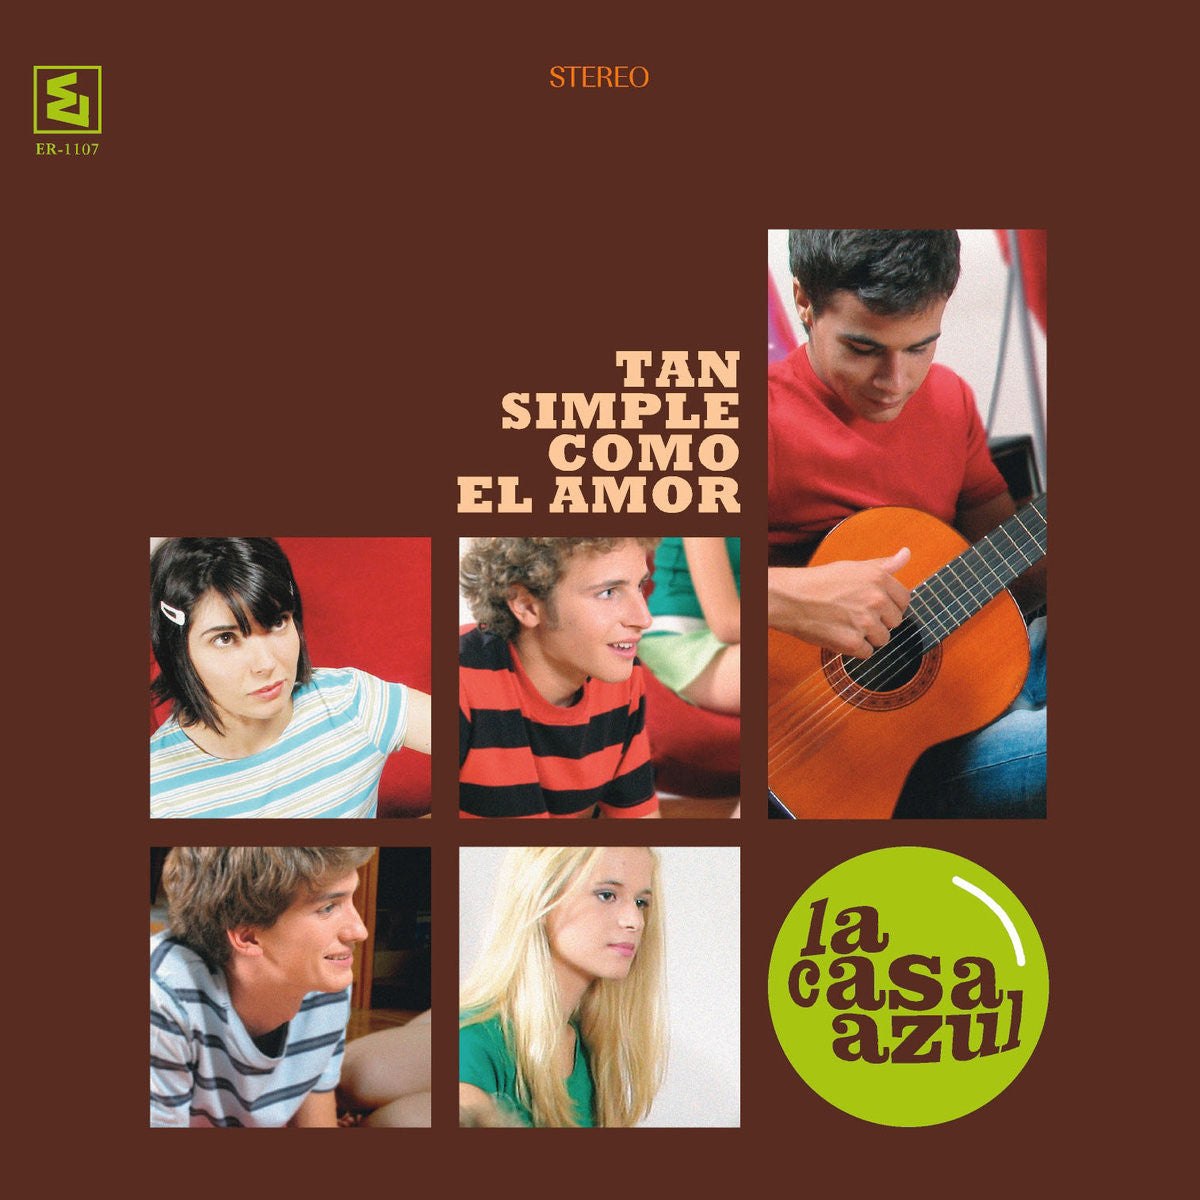 La Casa Azul - Tan Simple Como El Amor: 25th Elefant Anniversary Reissue